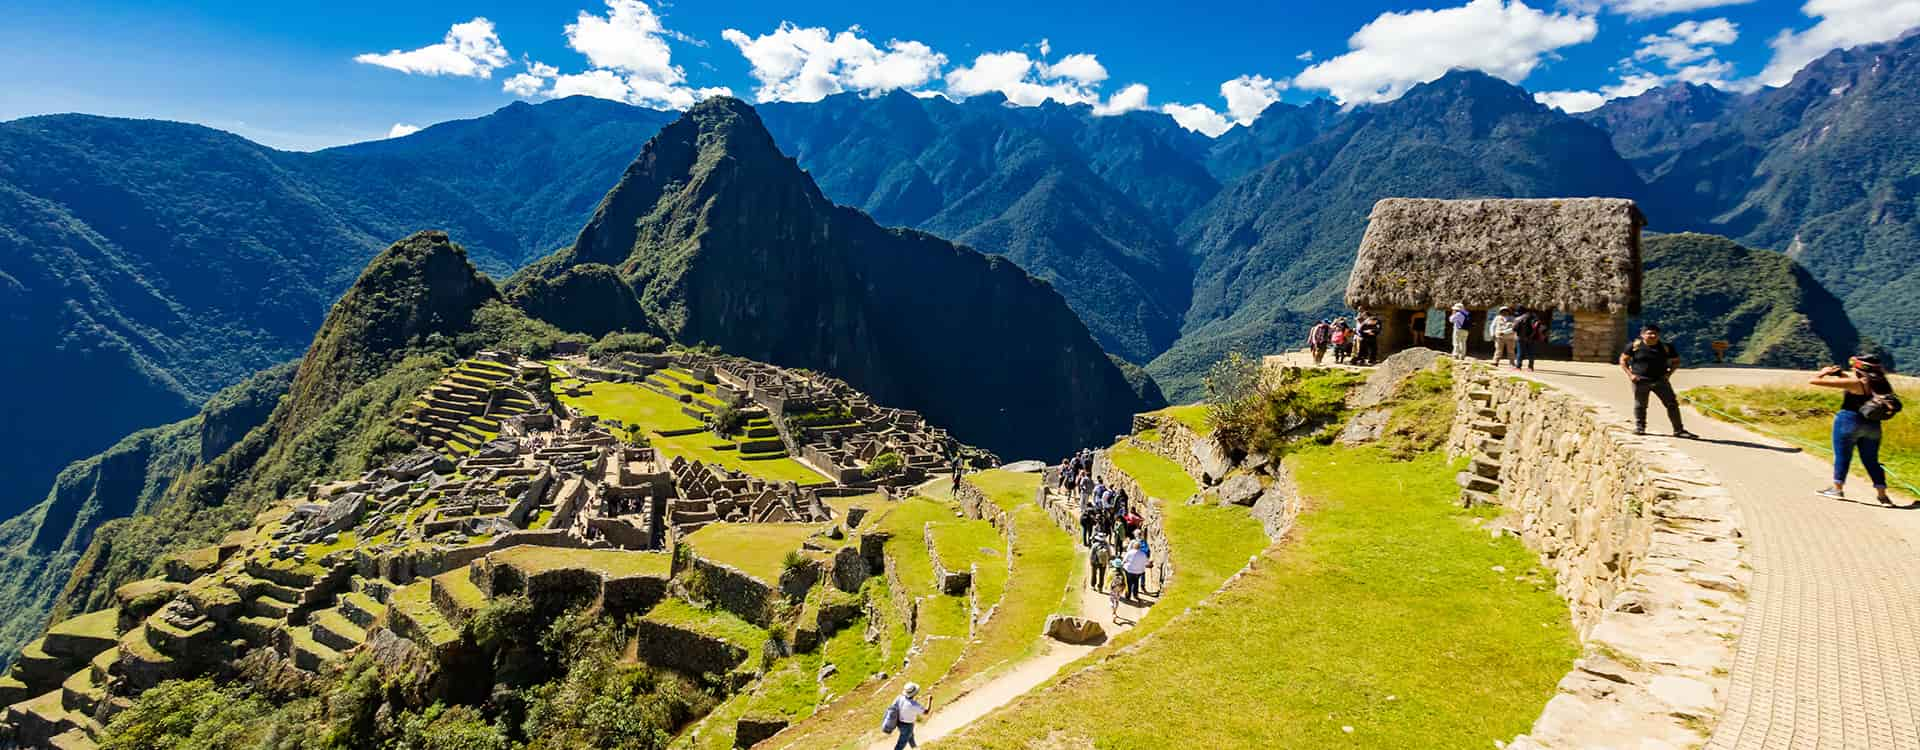 tour package to machu picchu all included